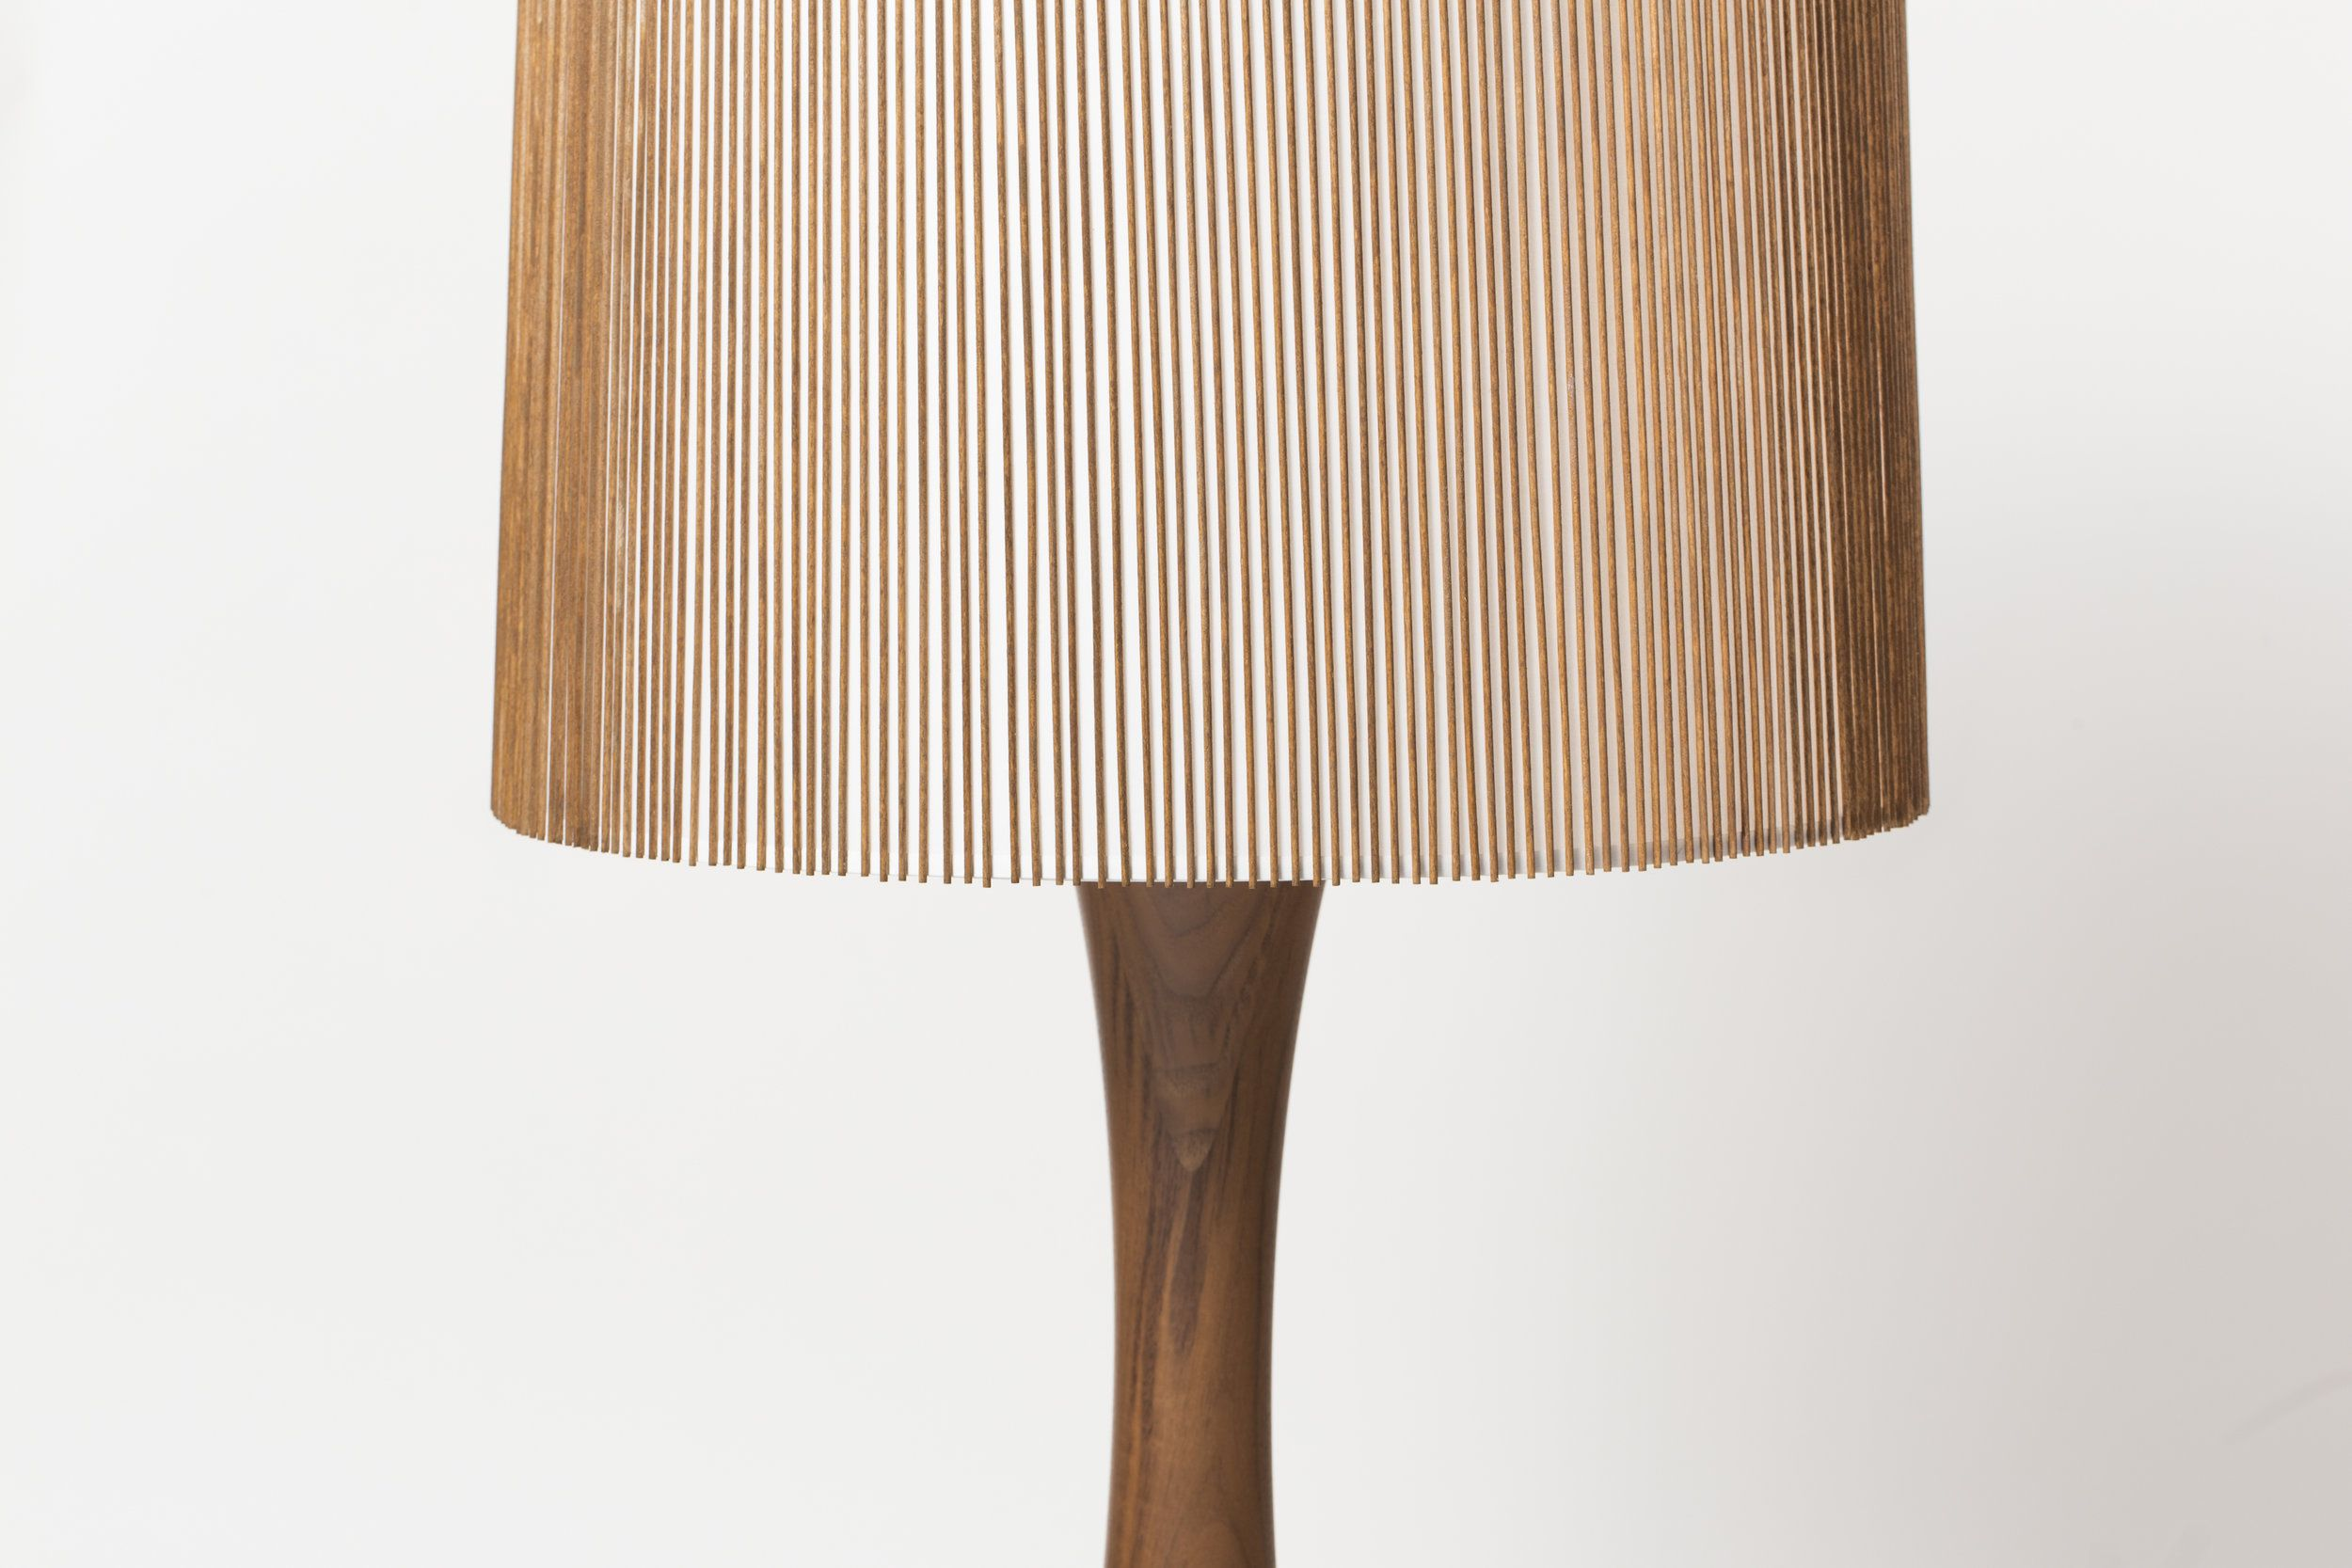 Hourglass Table Lamp Smilow Design Lamp Table Lamp Lighting Collections